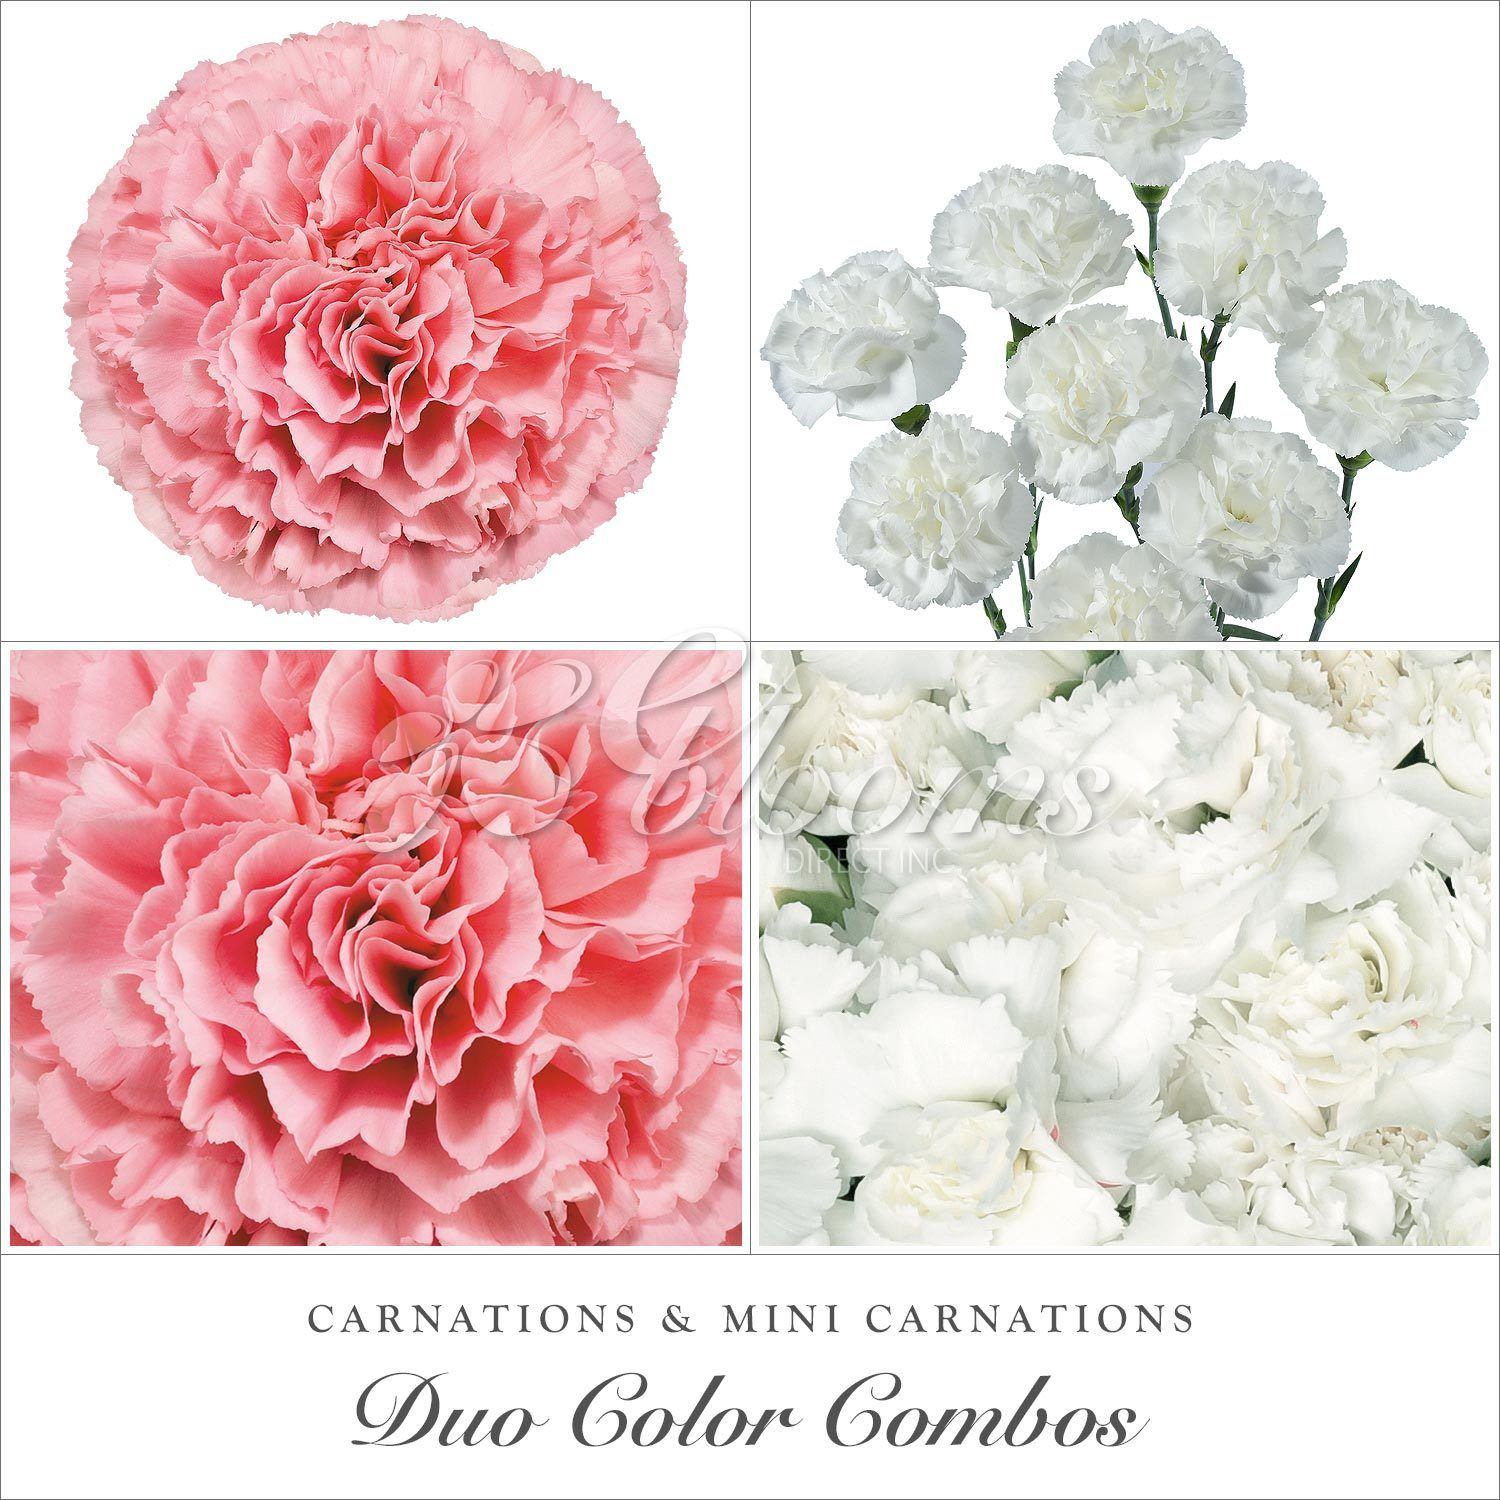 Carnations and Mini Carnation White - Pink | Carnation and Products